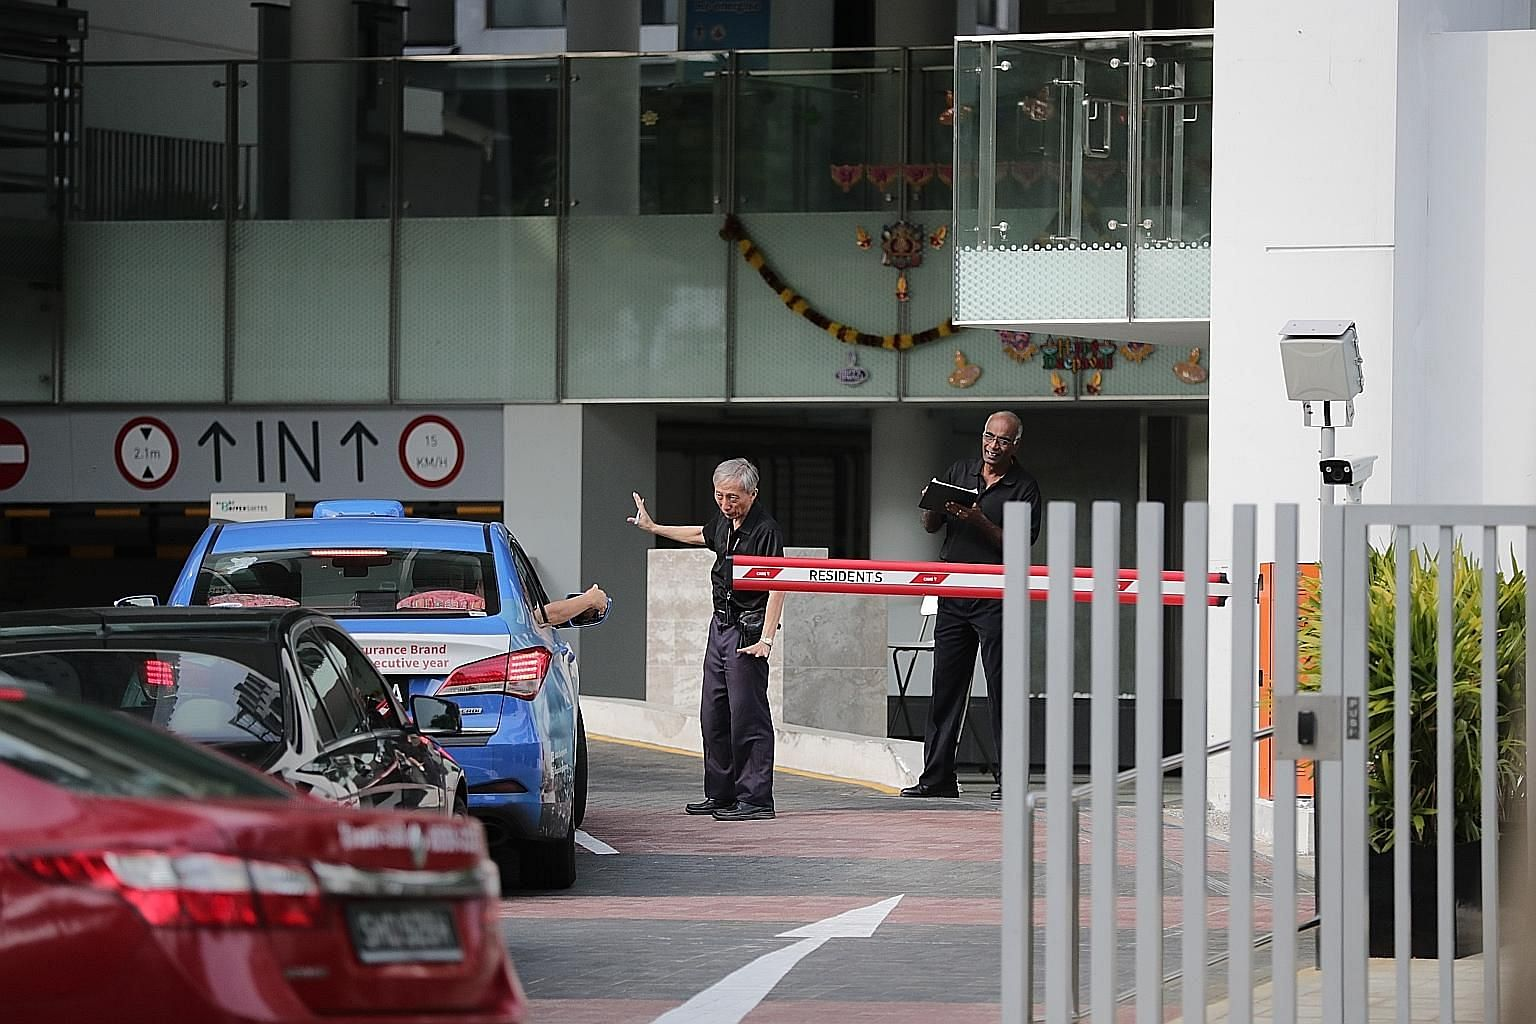 Security officers from a new agency manning the entrance at Eight Riversuites condo yesterday. Over the Deepavali weekend, one of the residents had verbally abused a security officer belonging to the previous agency. The Security Association Singapor